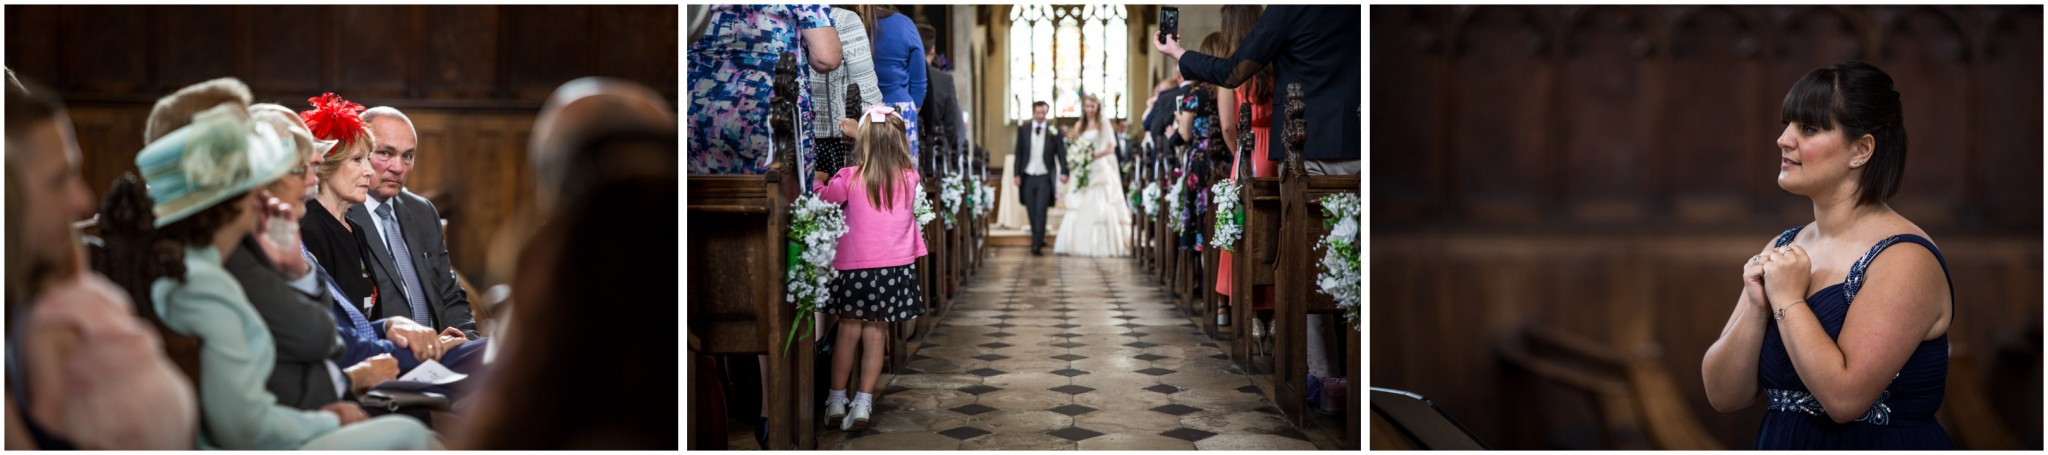 Highfield Park Wedding Photography End of the Ceremony